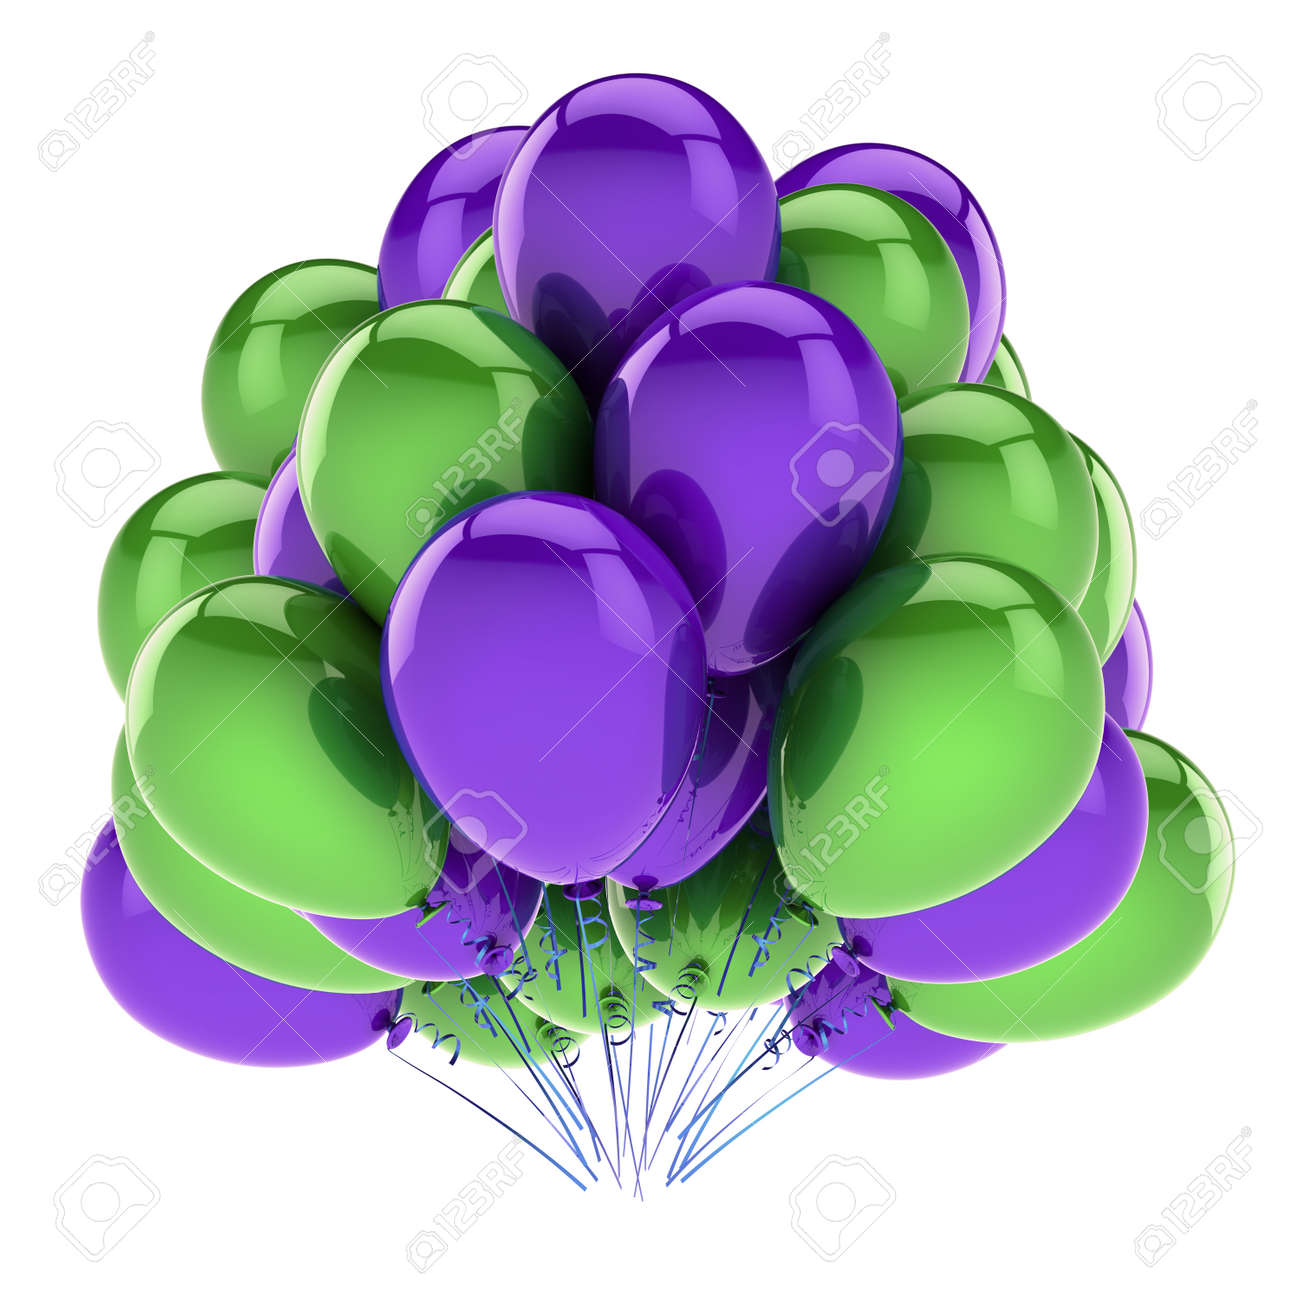 Happy Birthday Balloons Purple Green Party Decoration Carnival Celebration Symbol Colorful 3d Rendering